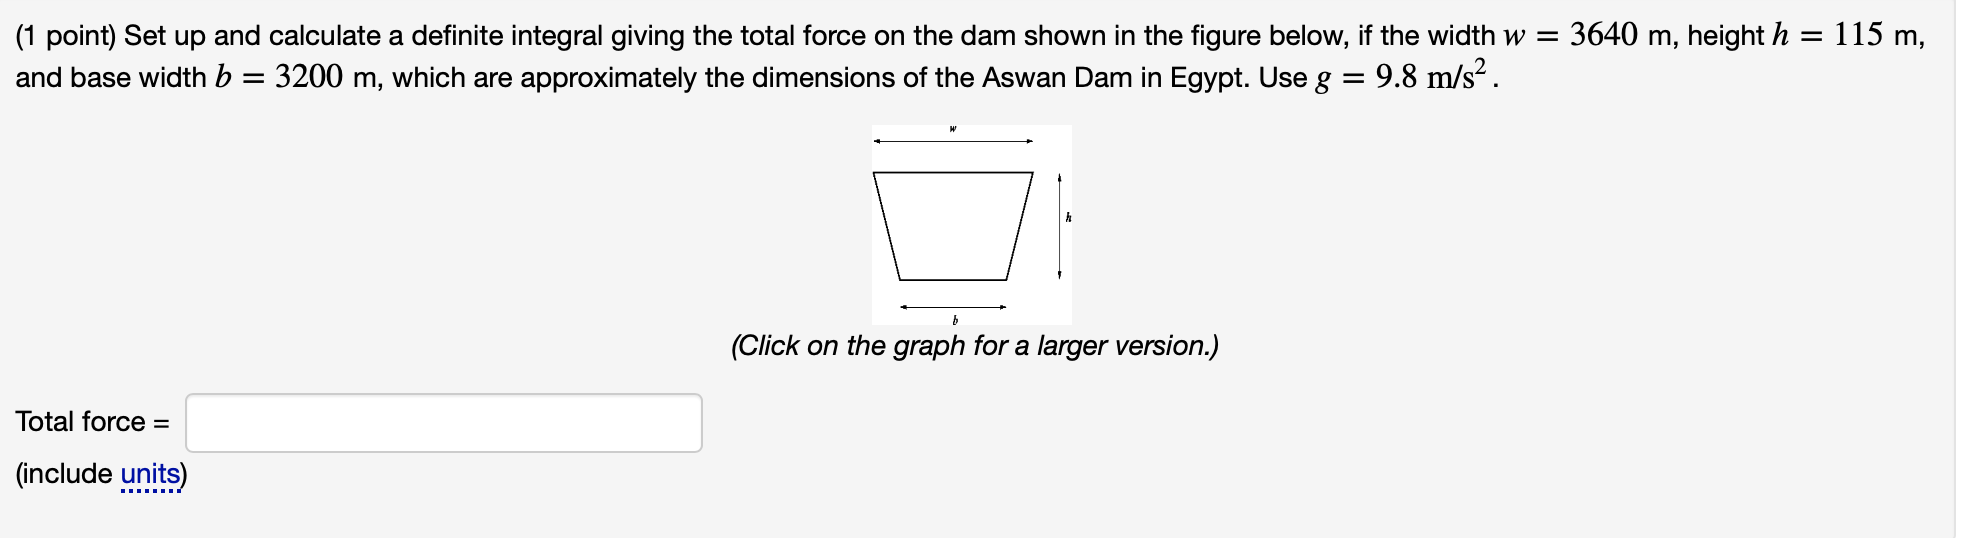 (1 point) Set up and calculate a definite integral giving the total force on the dam shown in the figure below, if the width